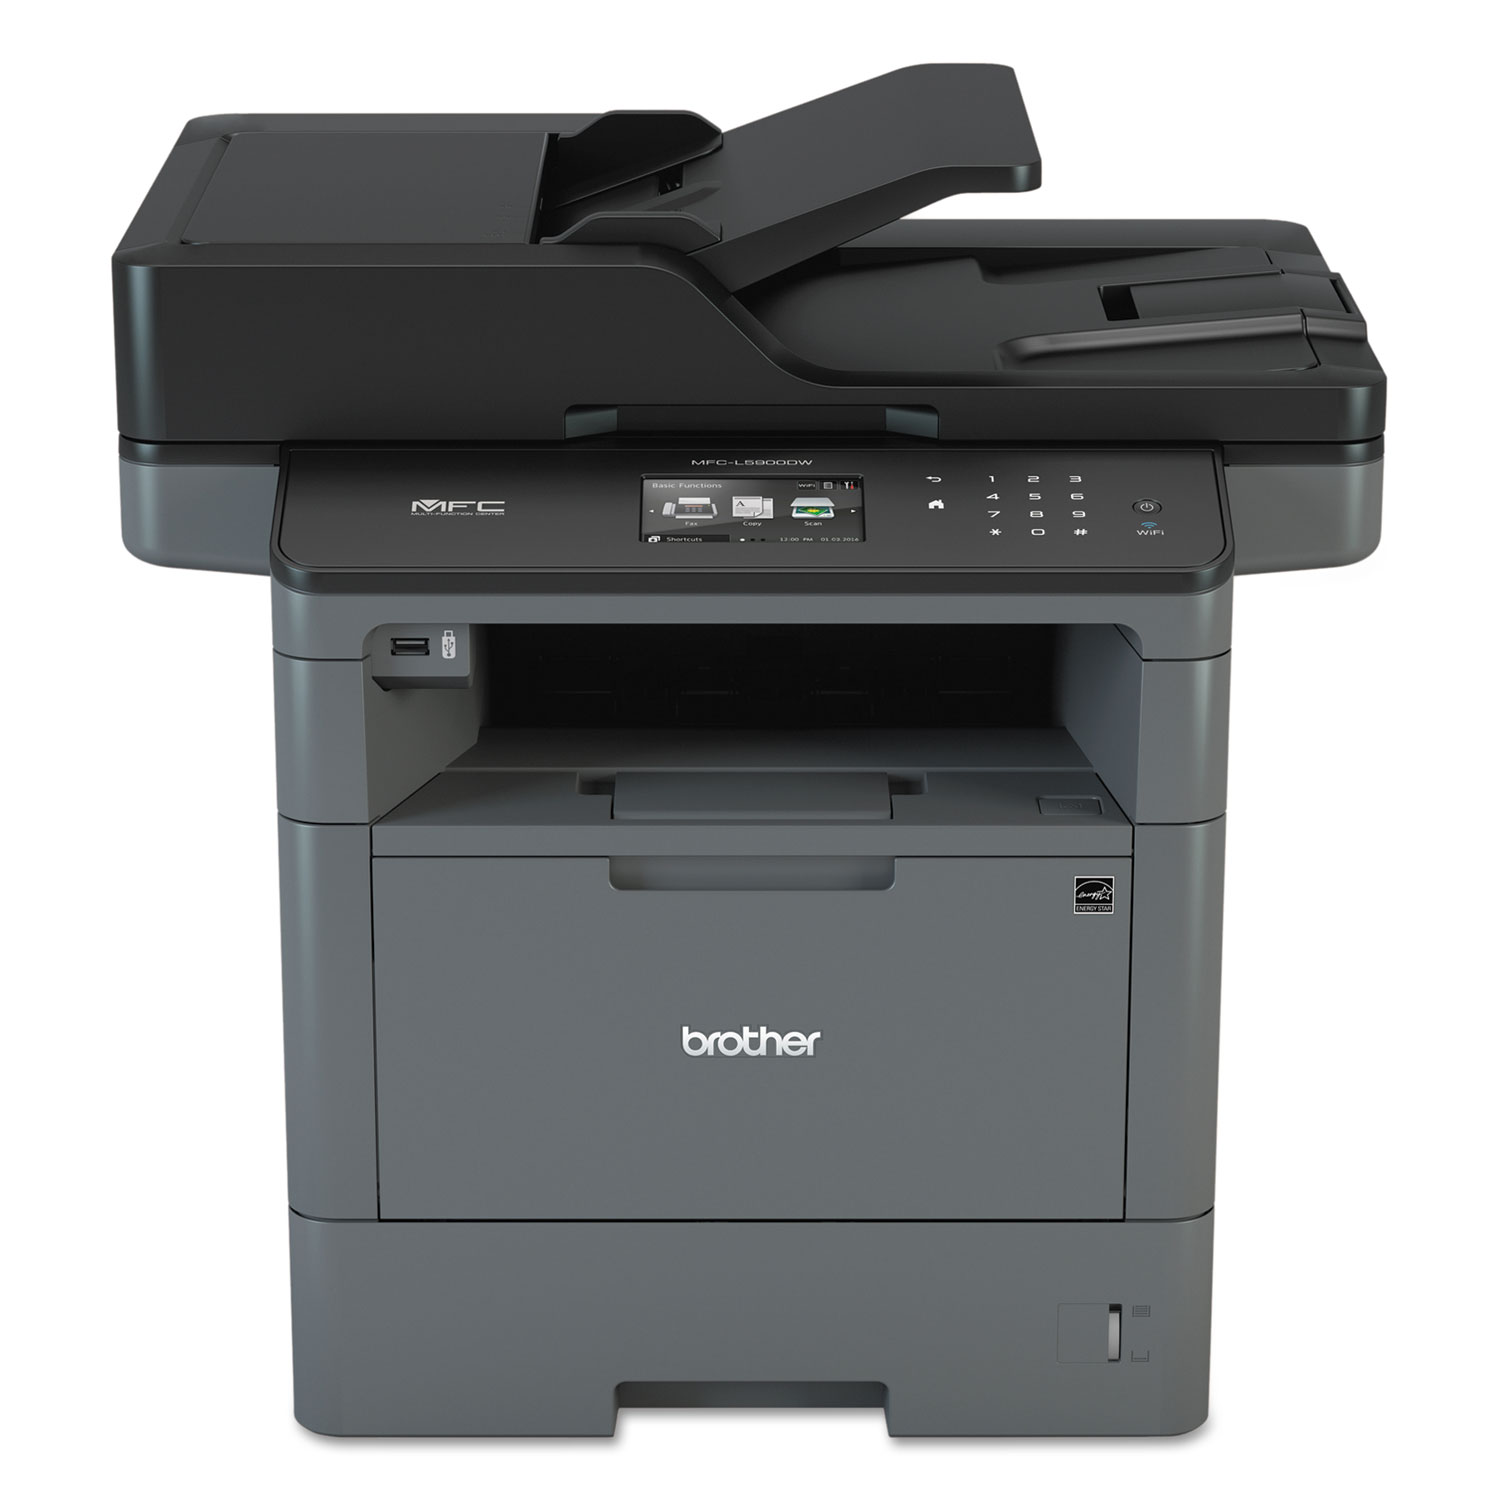 MFC-L5900DW Wireless Monochrome All-in-One Laser Printer, Copy/Fax/Print/Scan